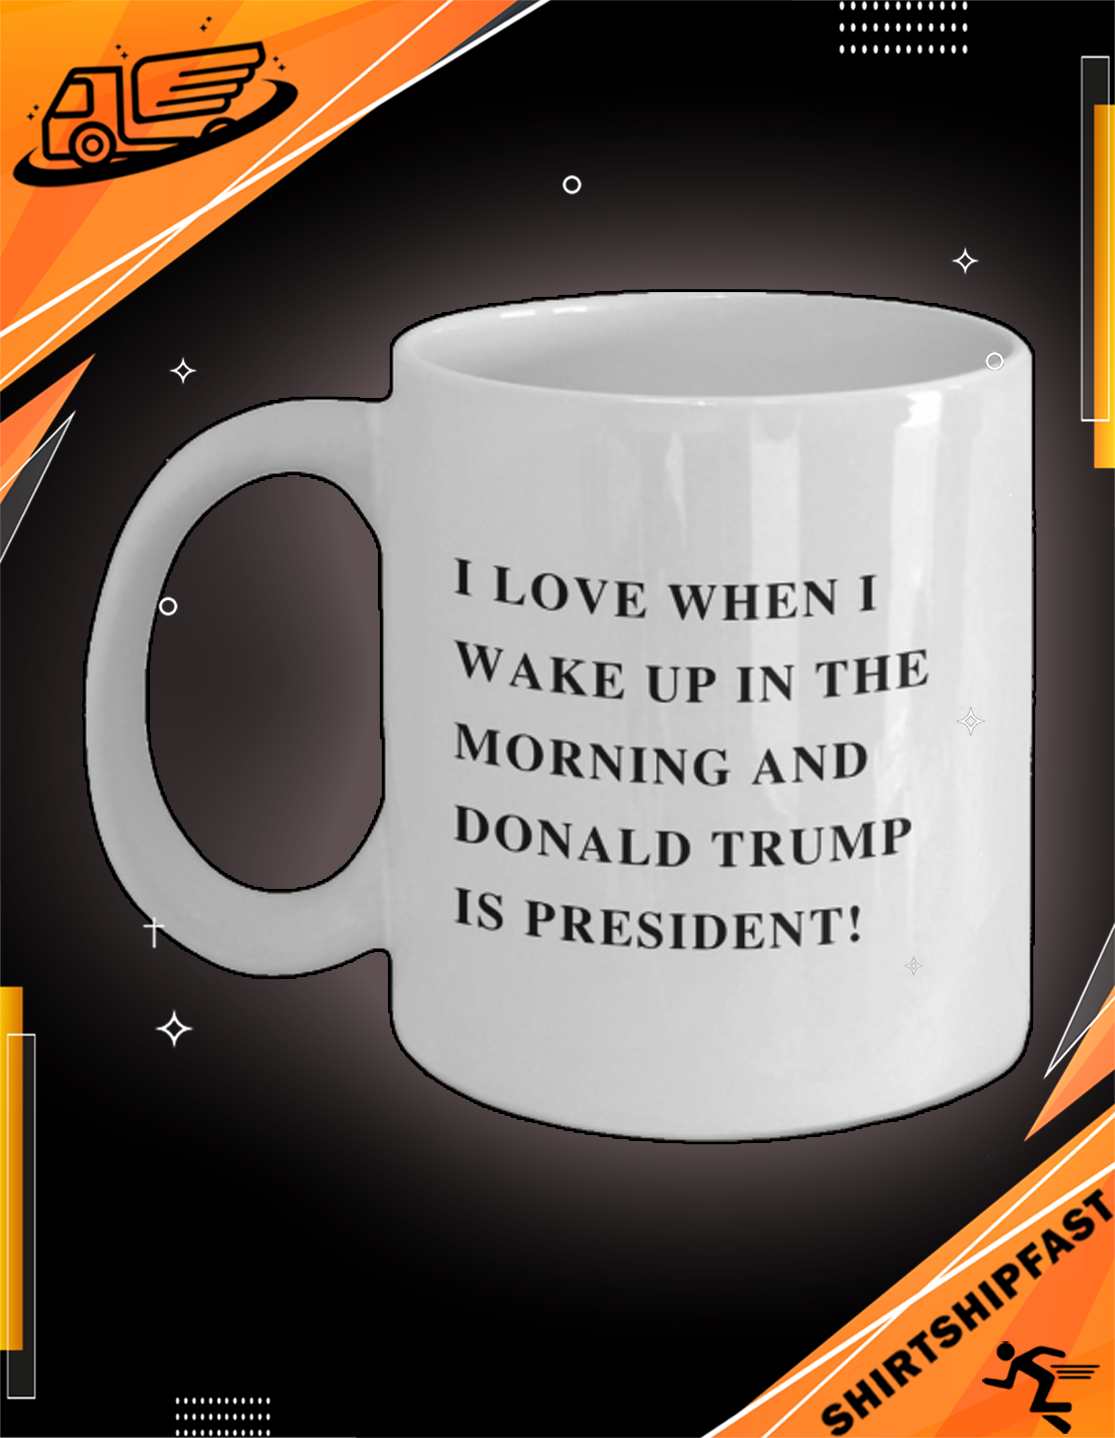 I love when I wake up in the morning and Donald Trump is president mug - Picture 3